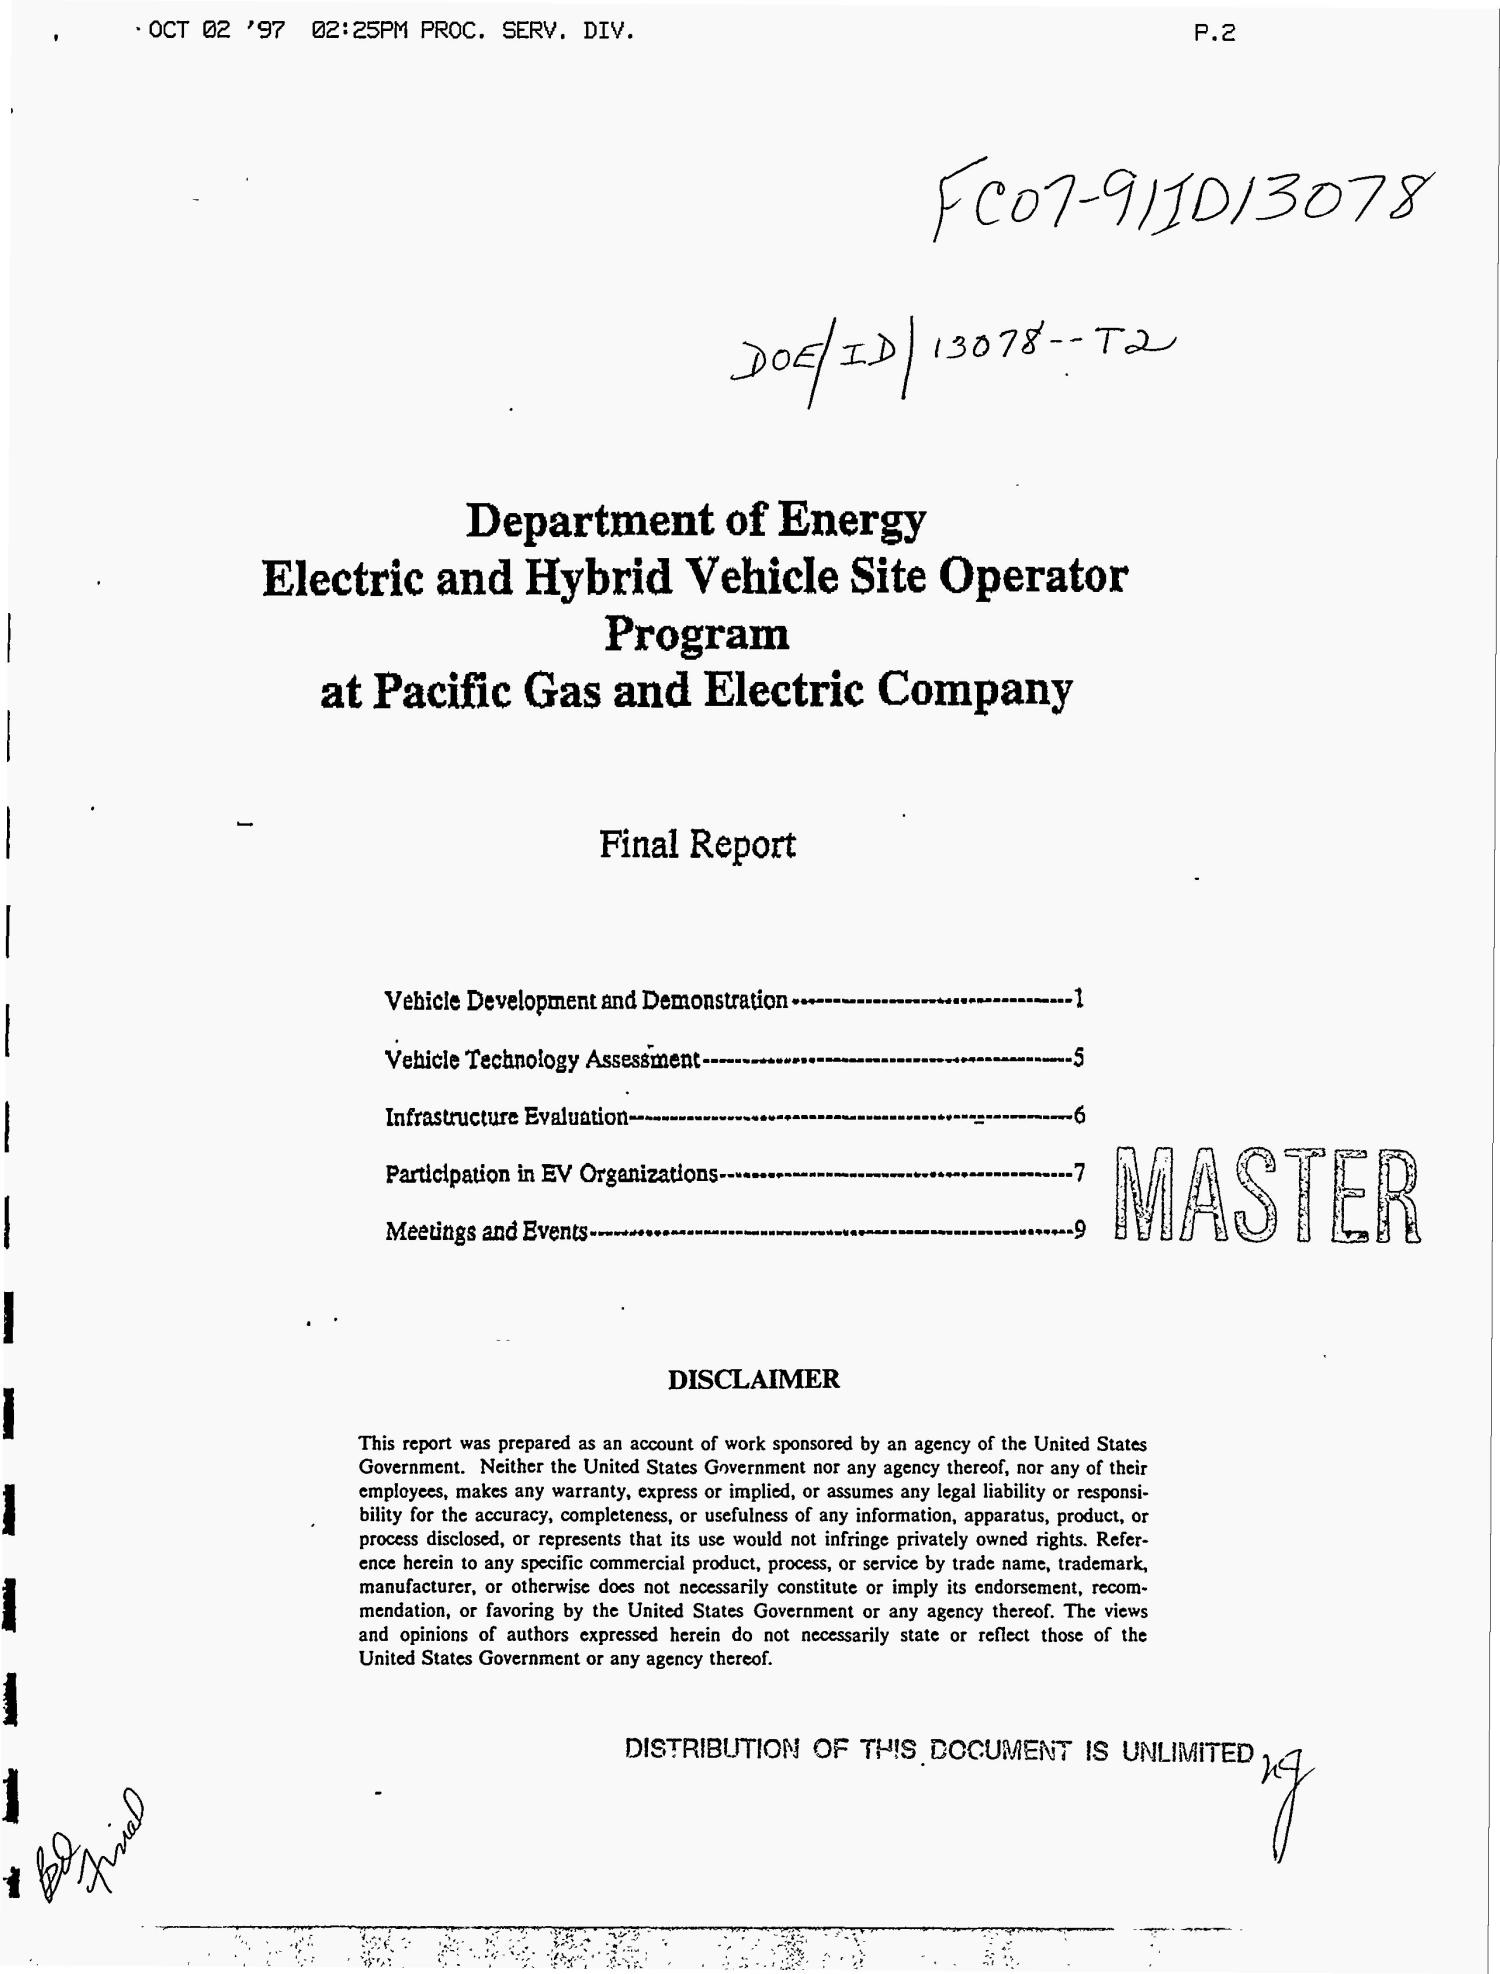 Department of Energy electric and hybrid vehicle site operator program at Pacific Gas and Electric Company. Final report                                                                                                      [Sequence #]: 1 of 13